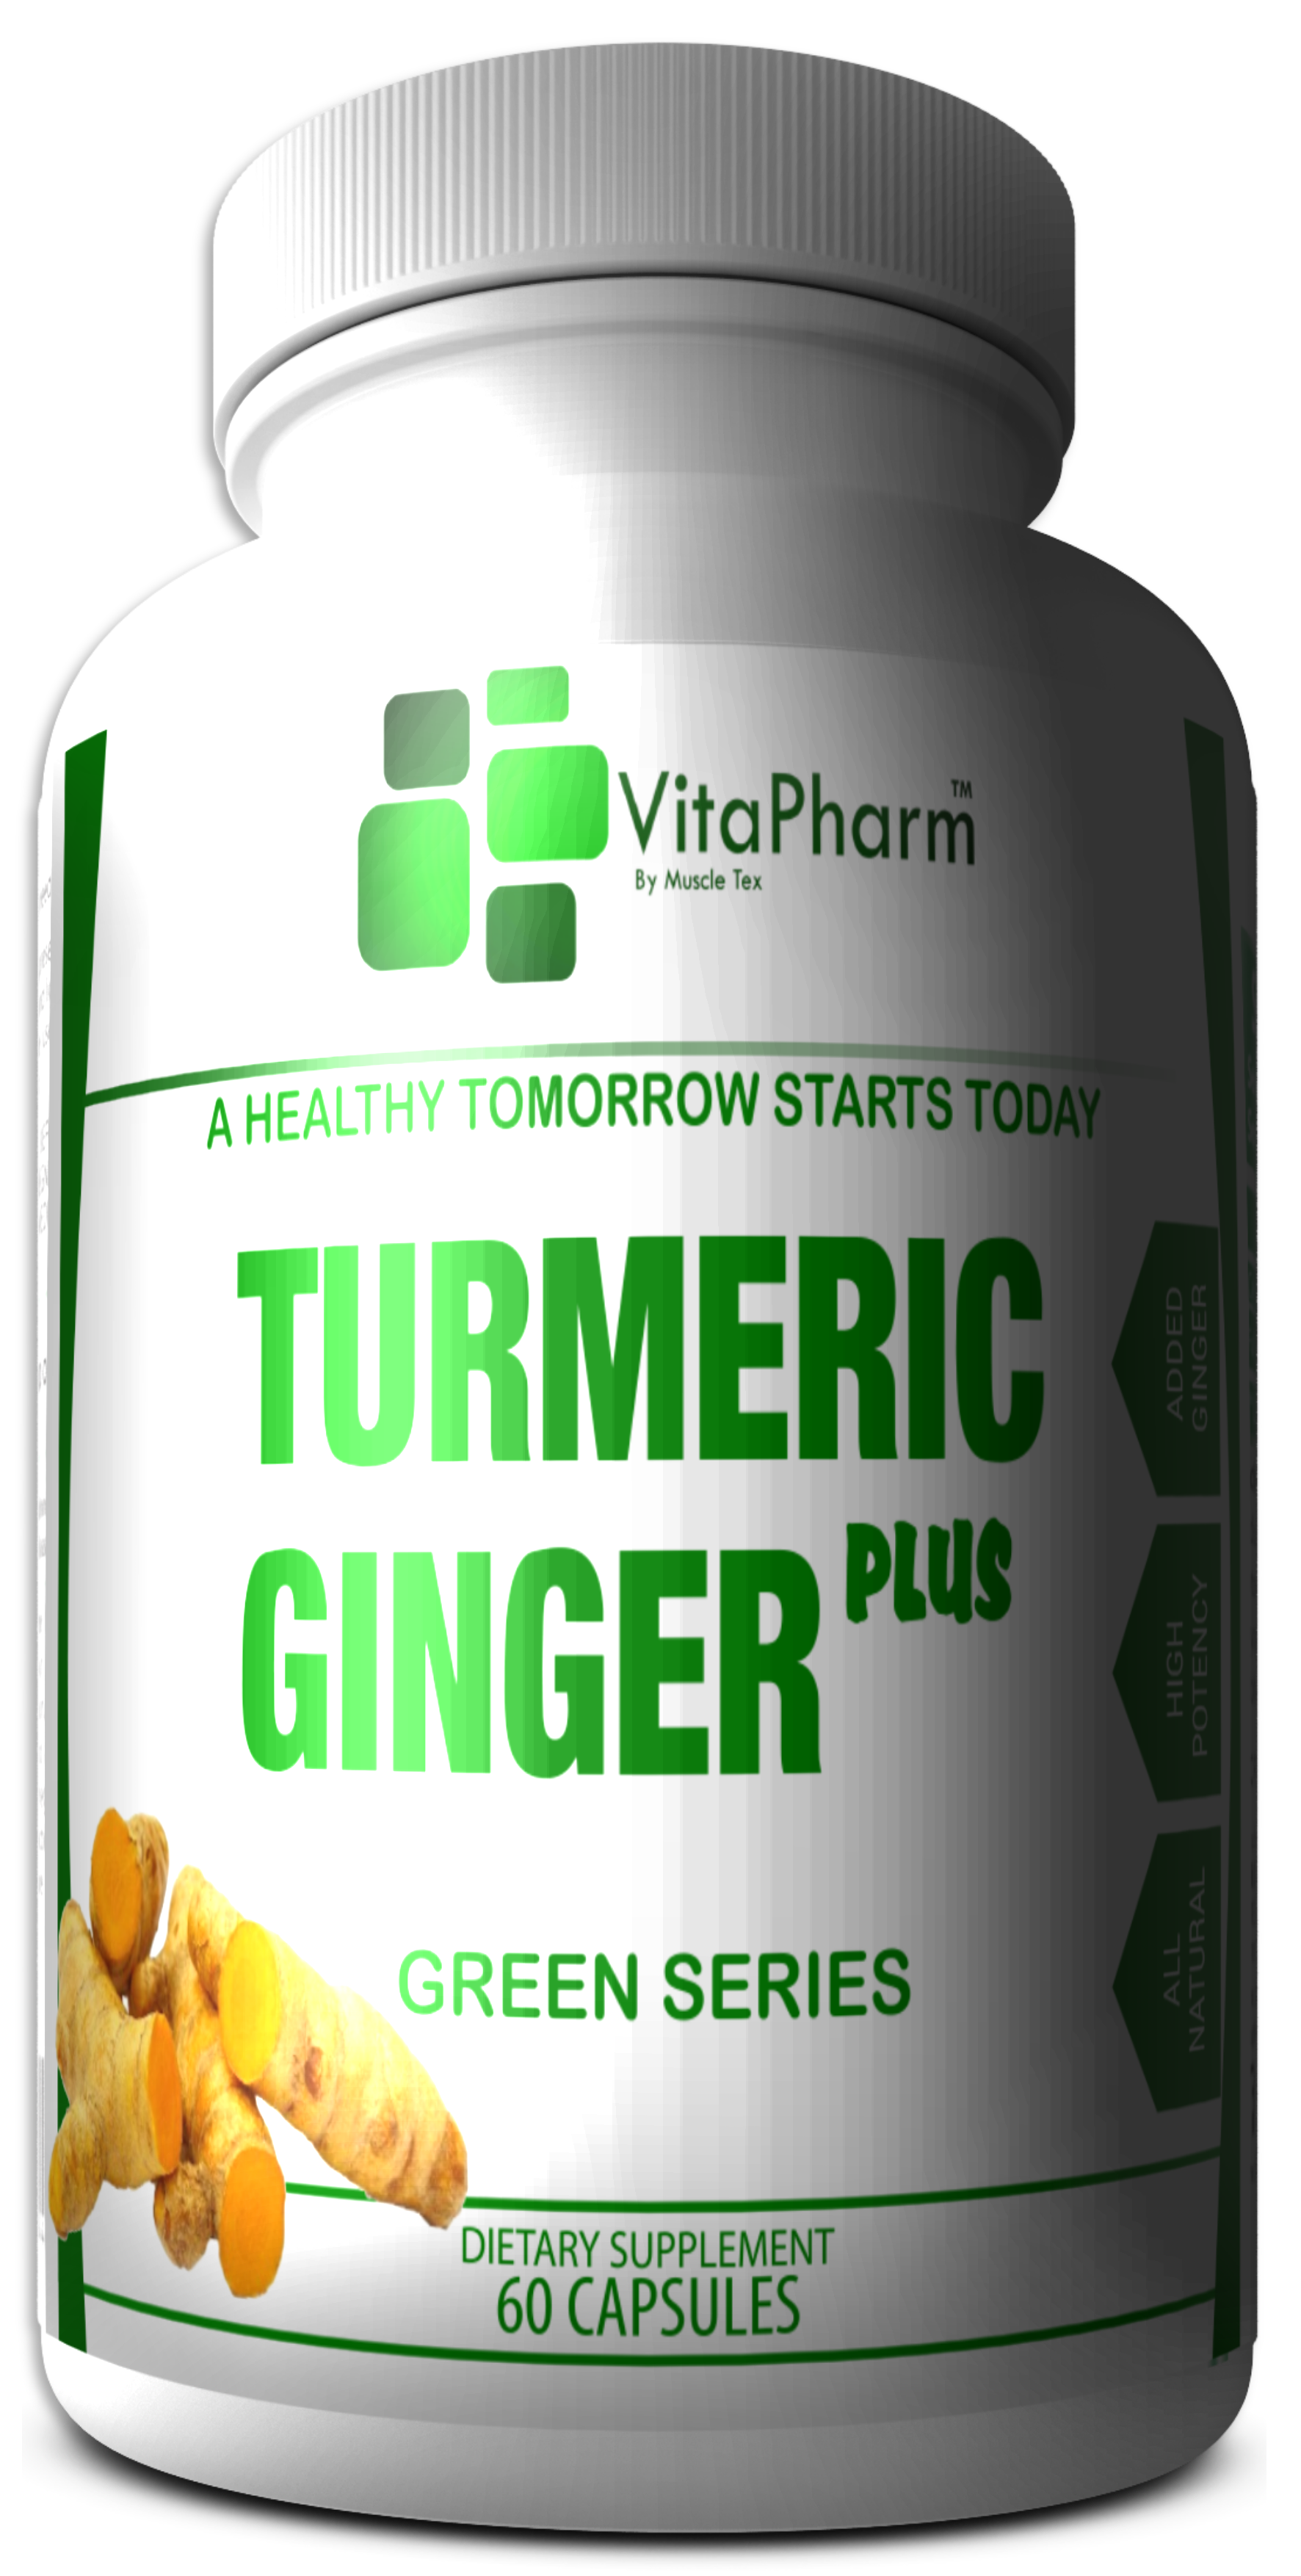 Turmeric & Ginger Lab Test Results